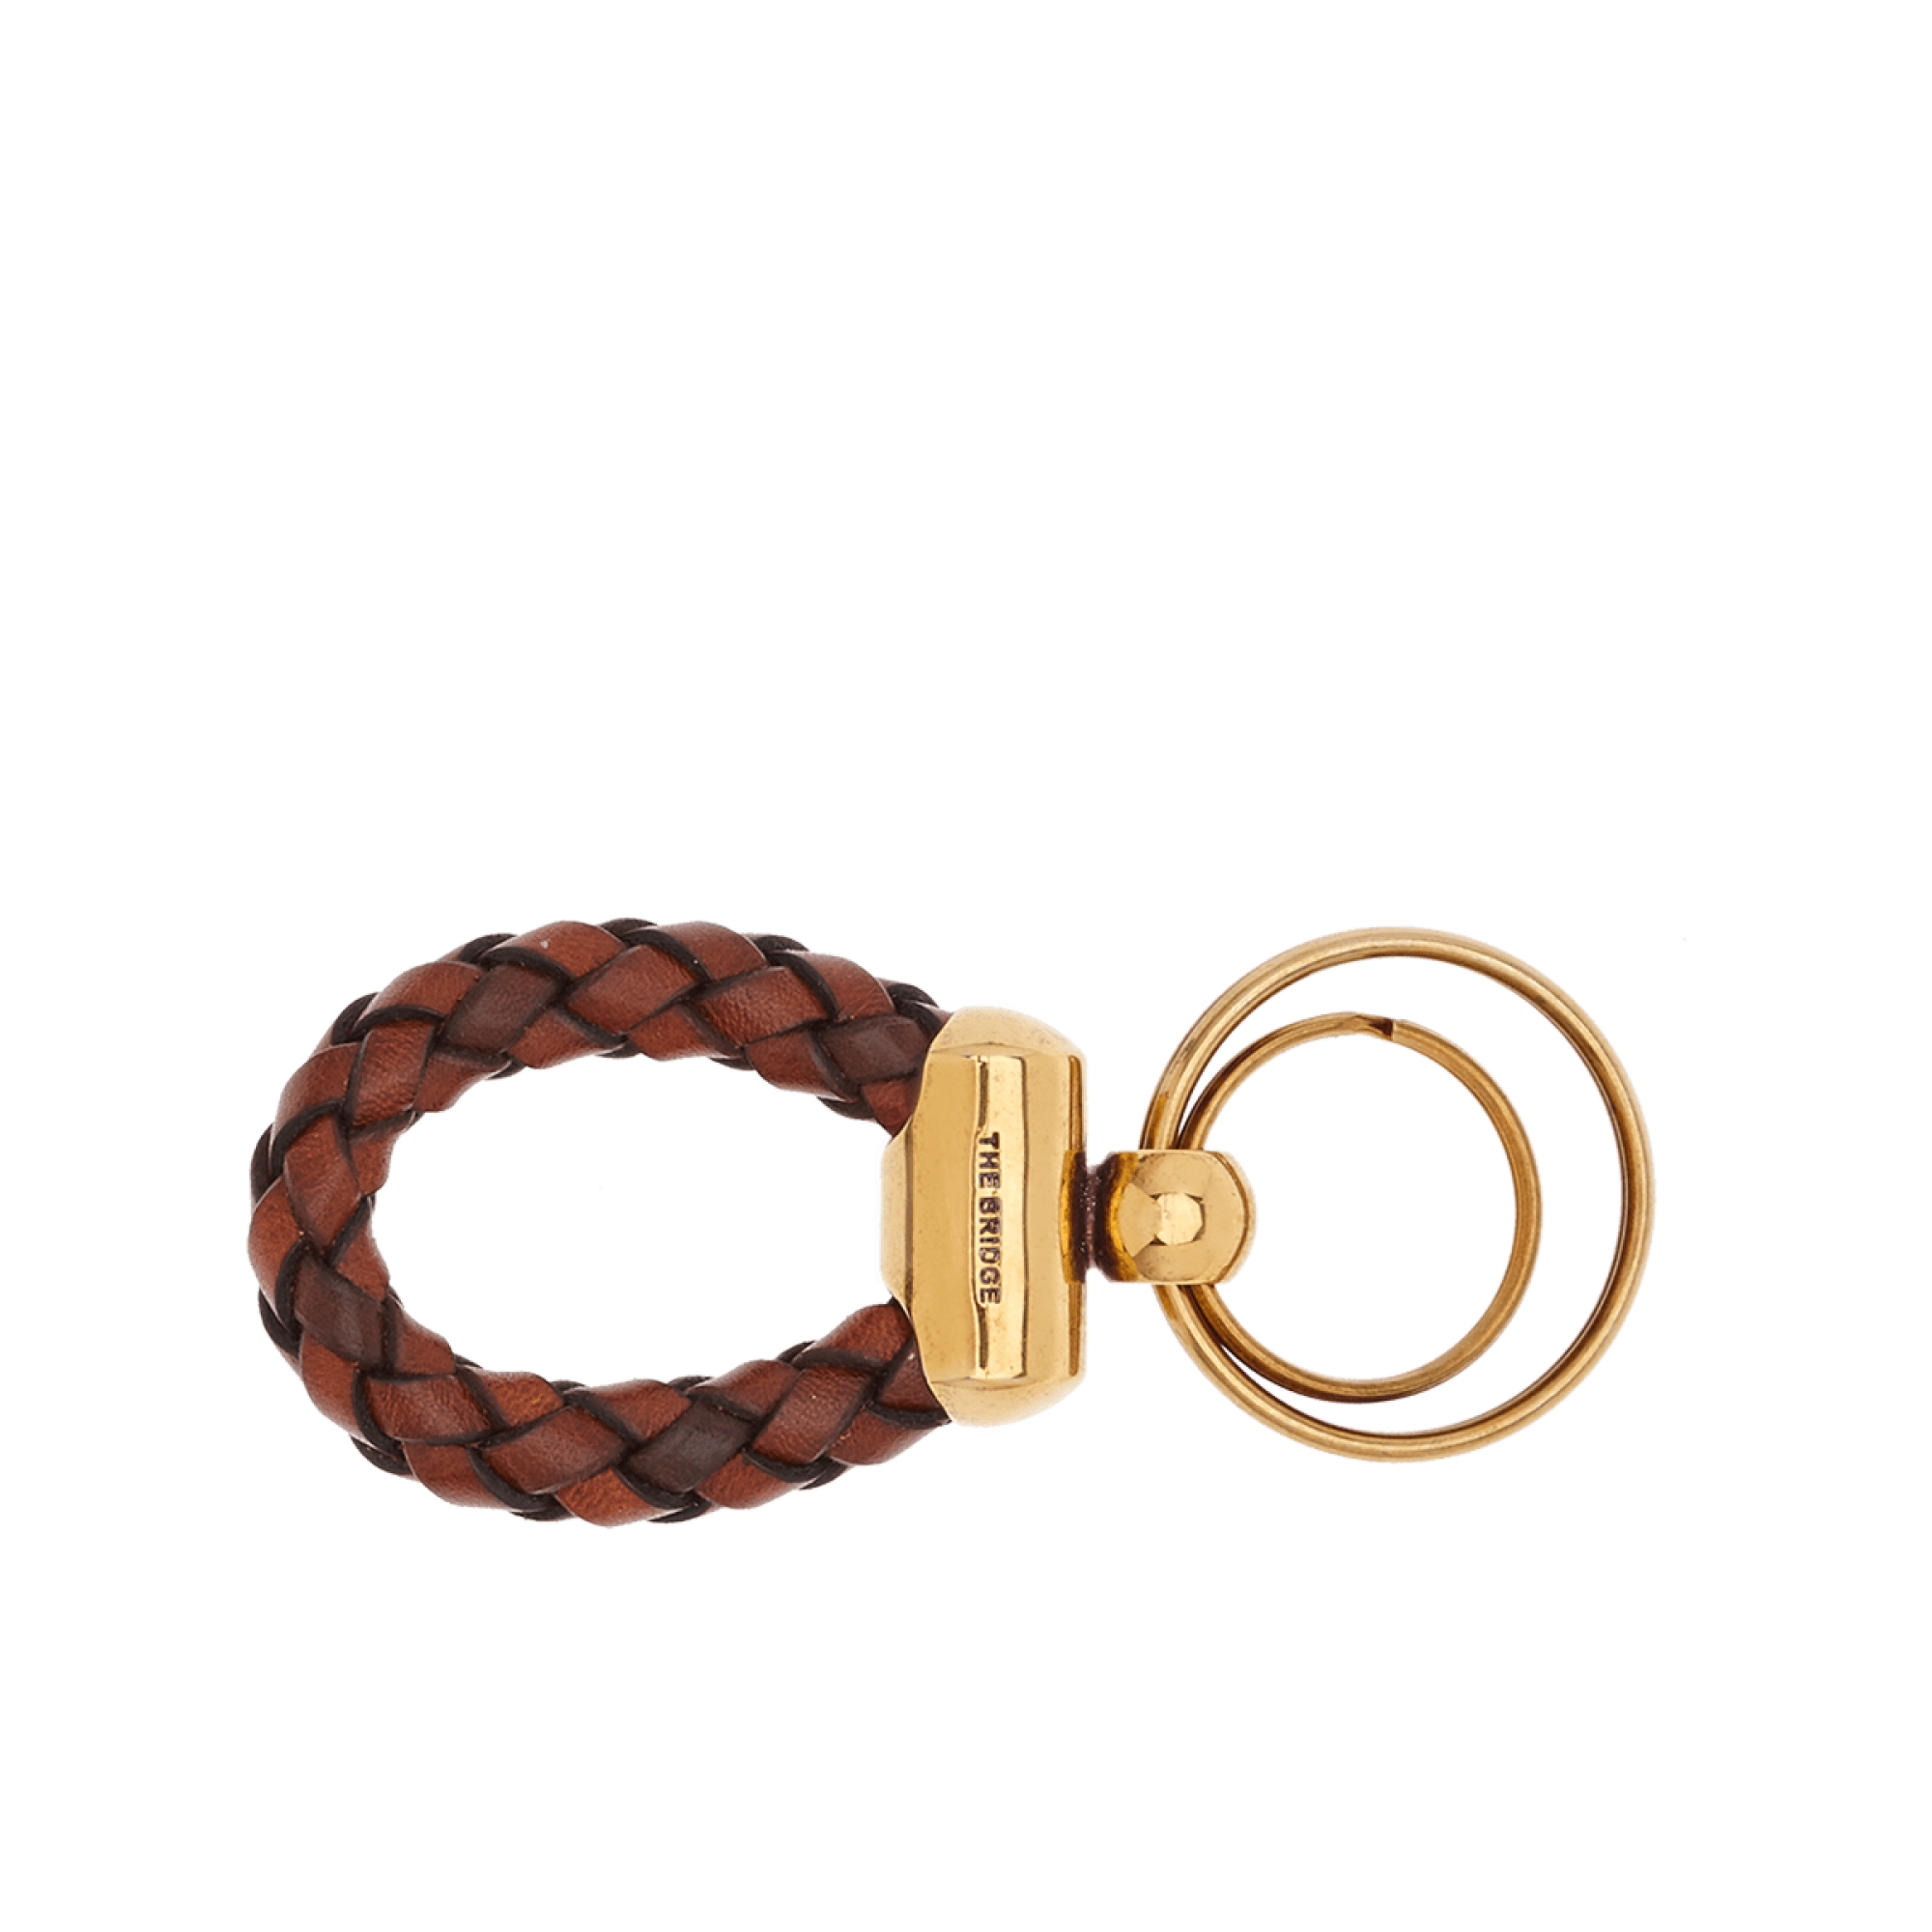 The Bridge Uomo Leather Keyring in Brown Gold